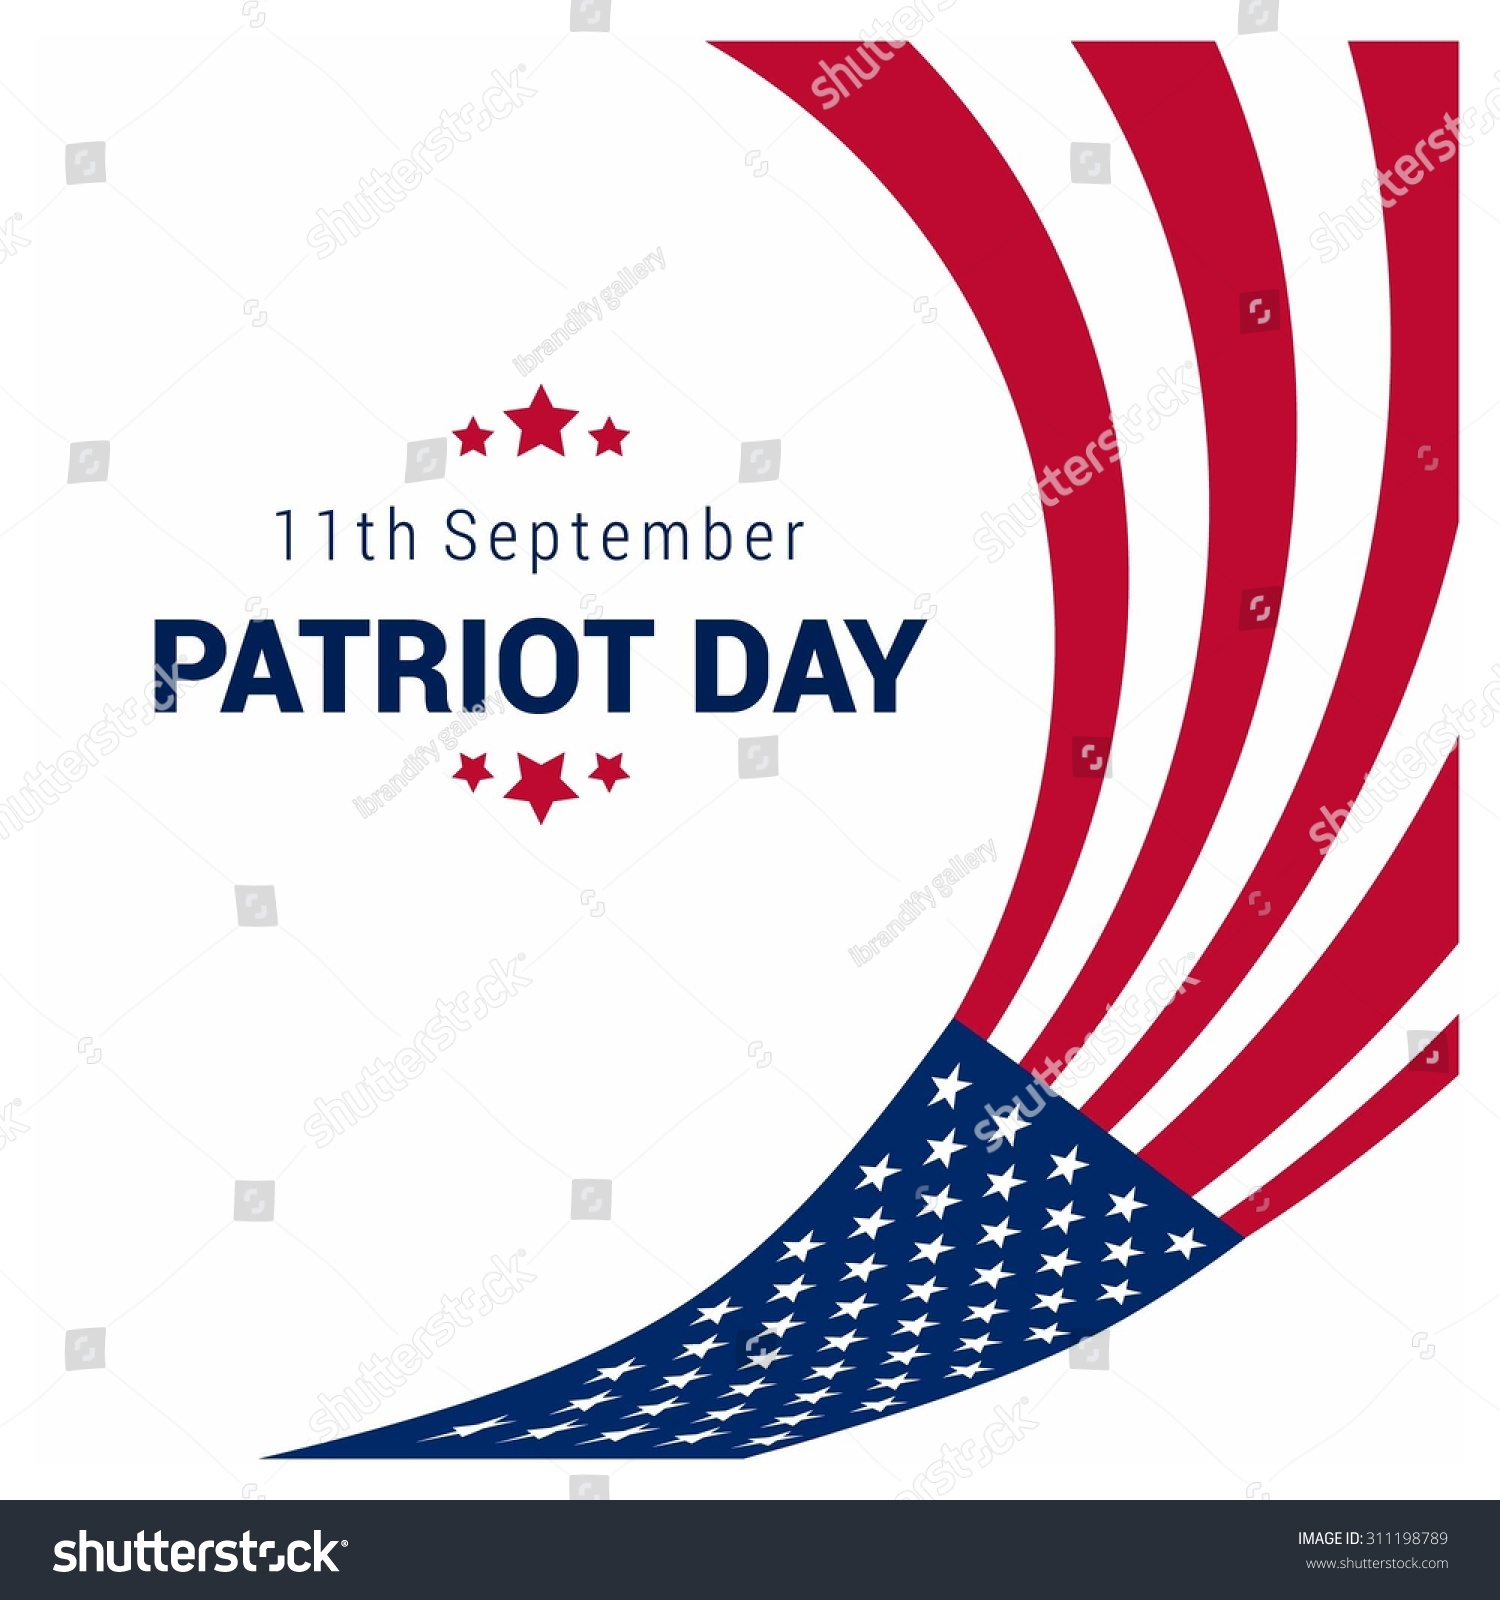 9 11 Patriot Day Background Patriot Day September 11